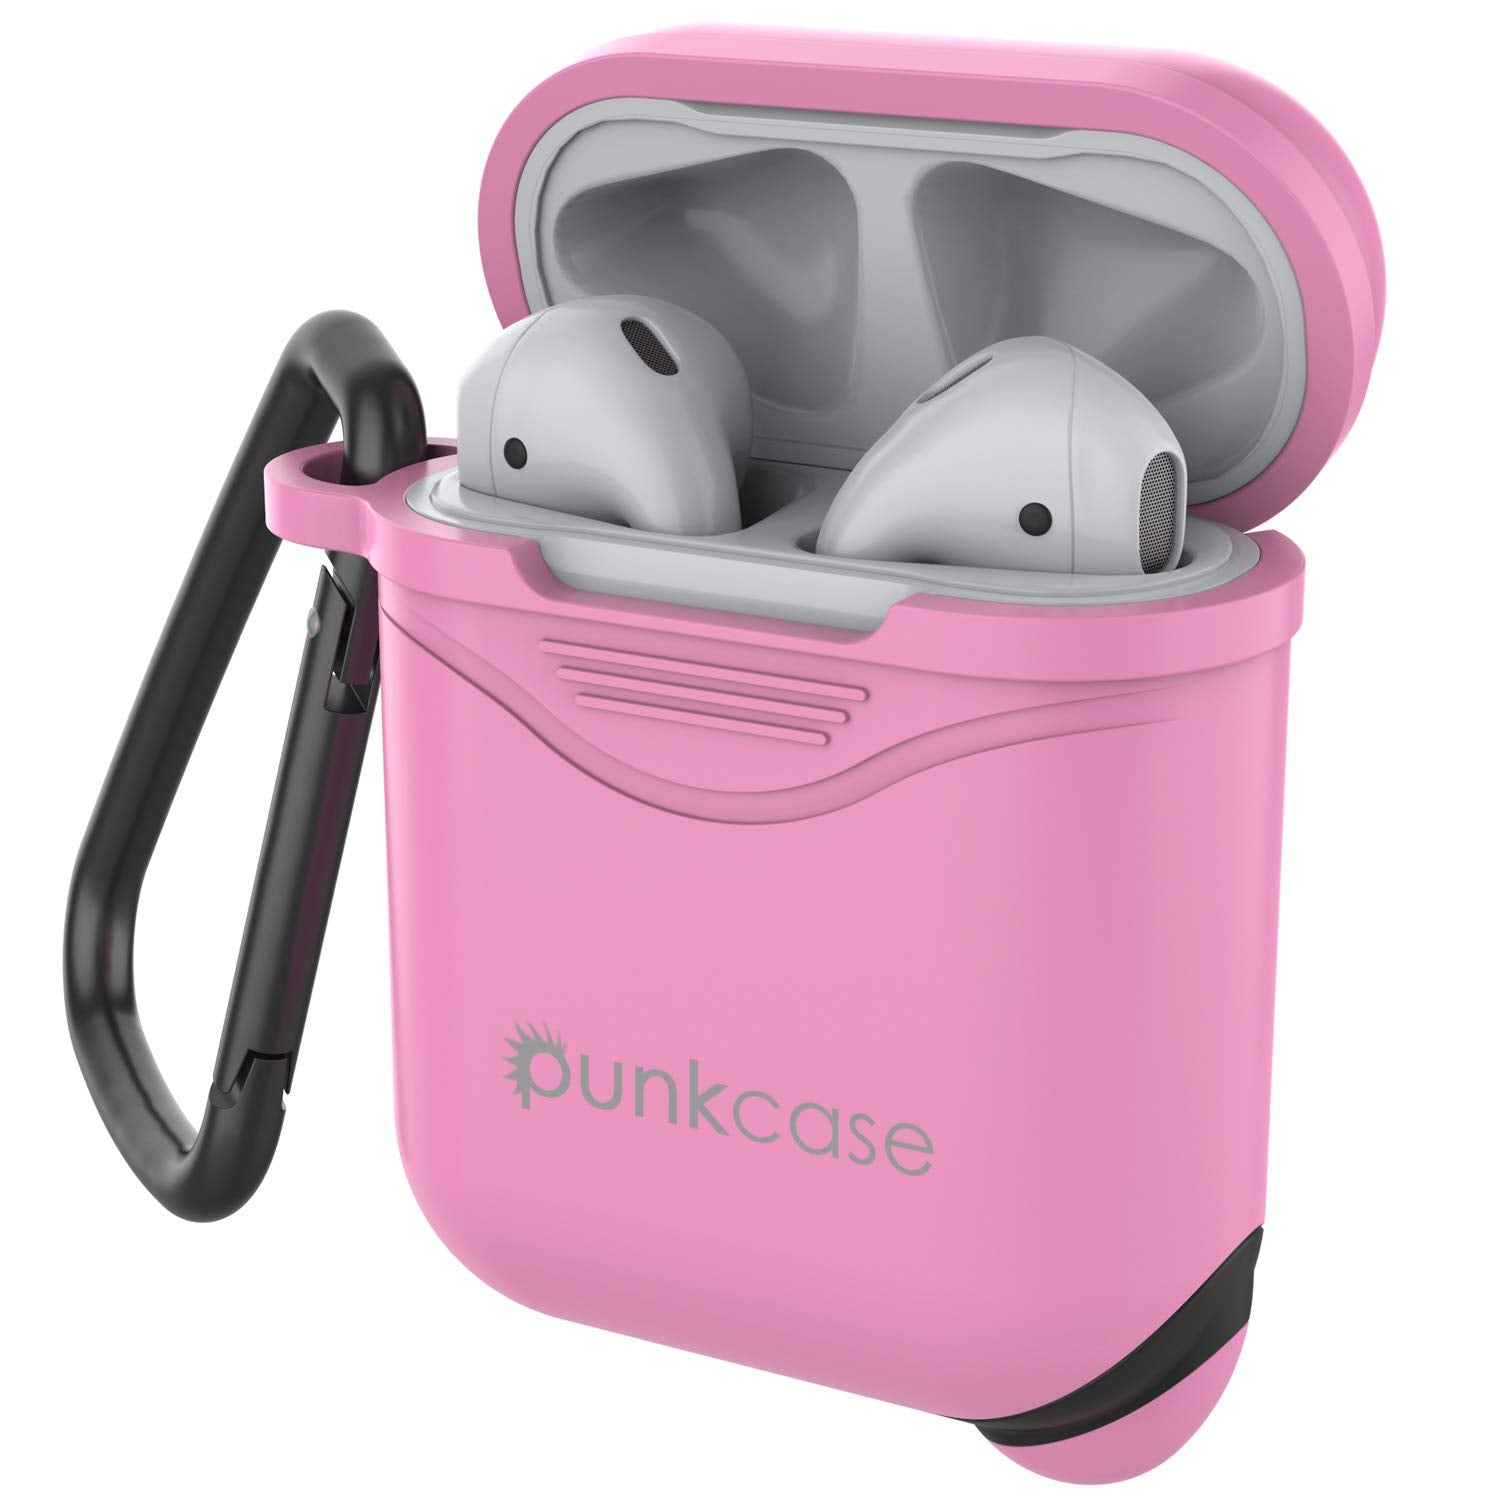 Punkcase Airpod Case with Keychain (Pink)